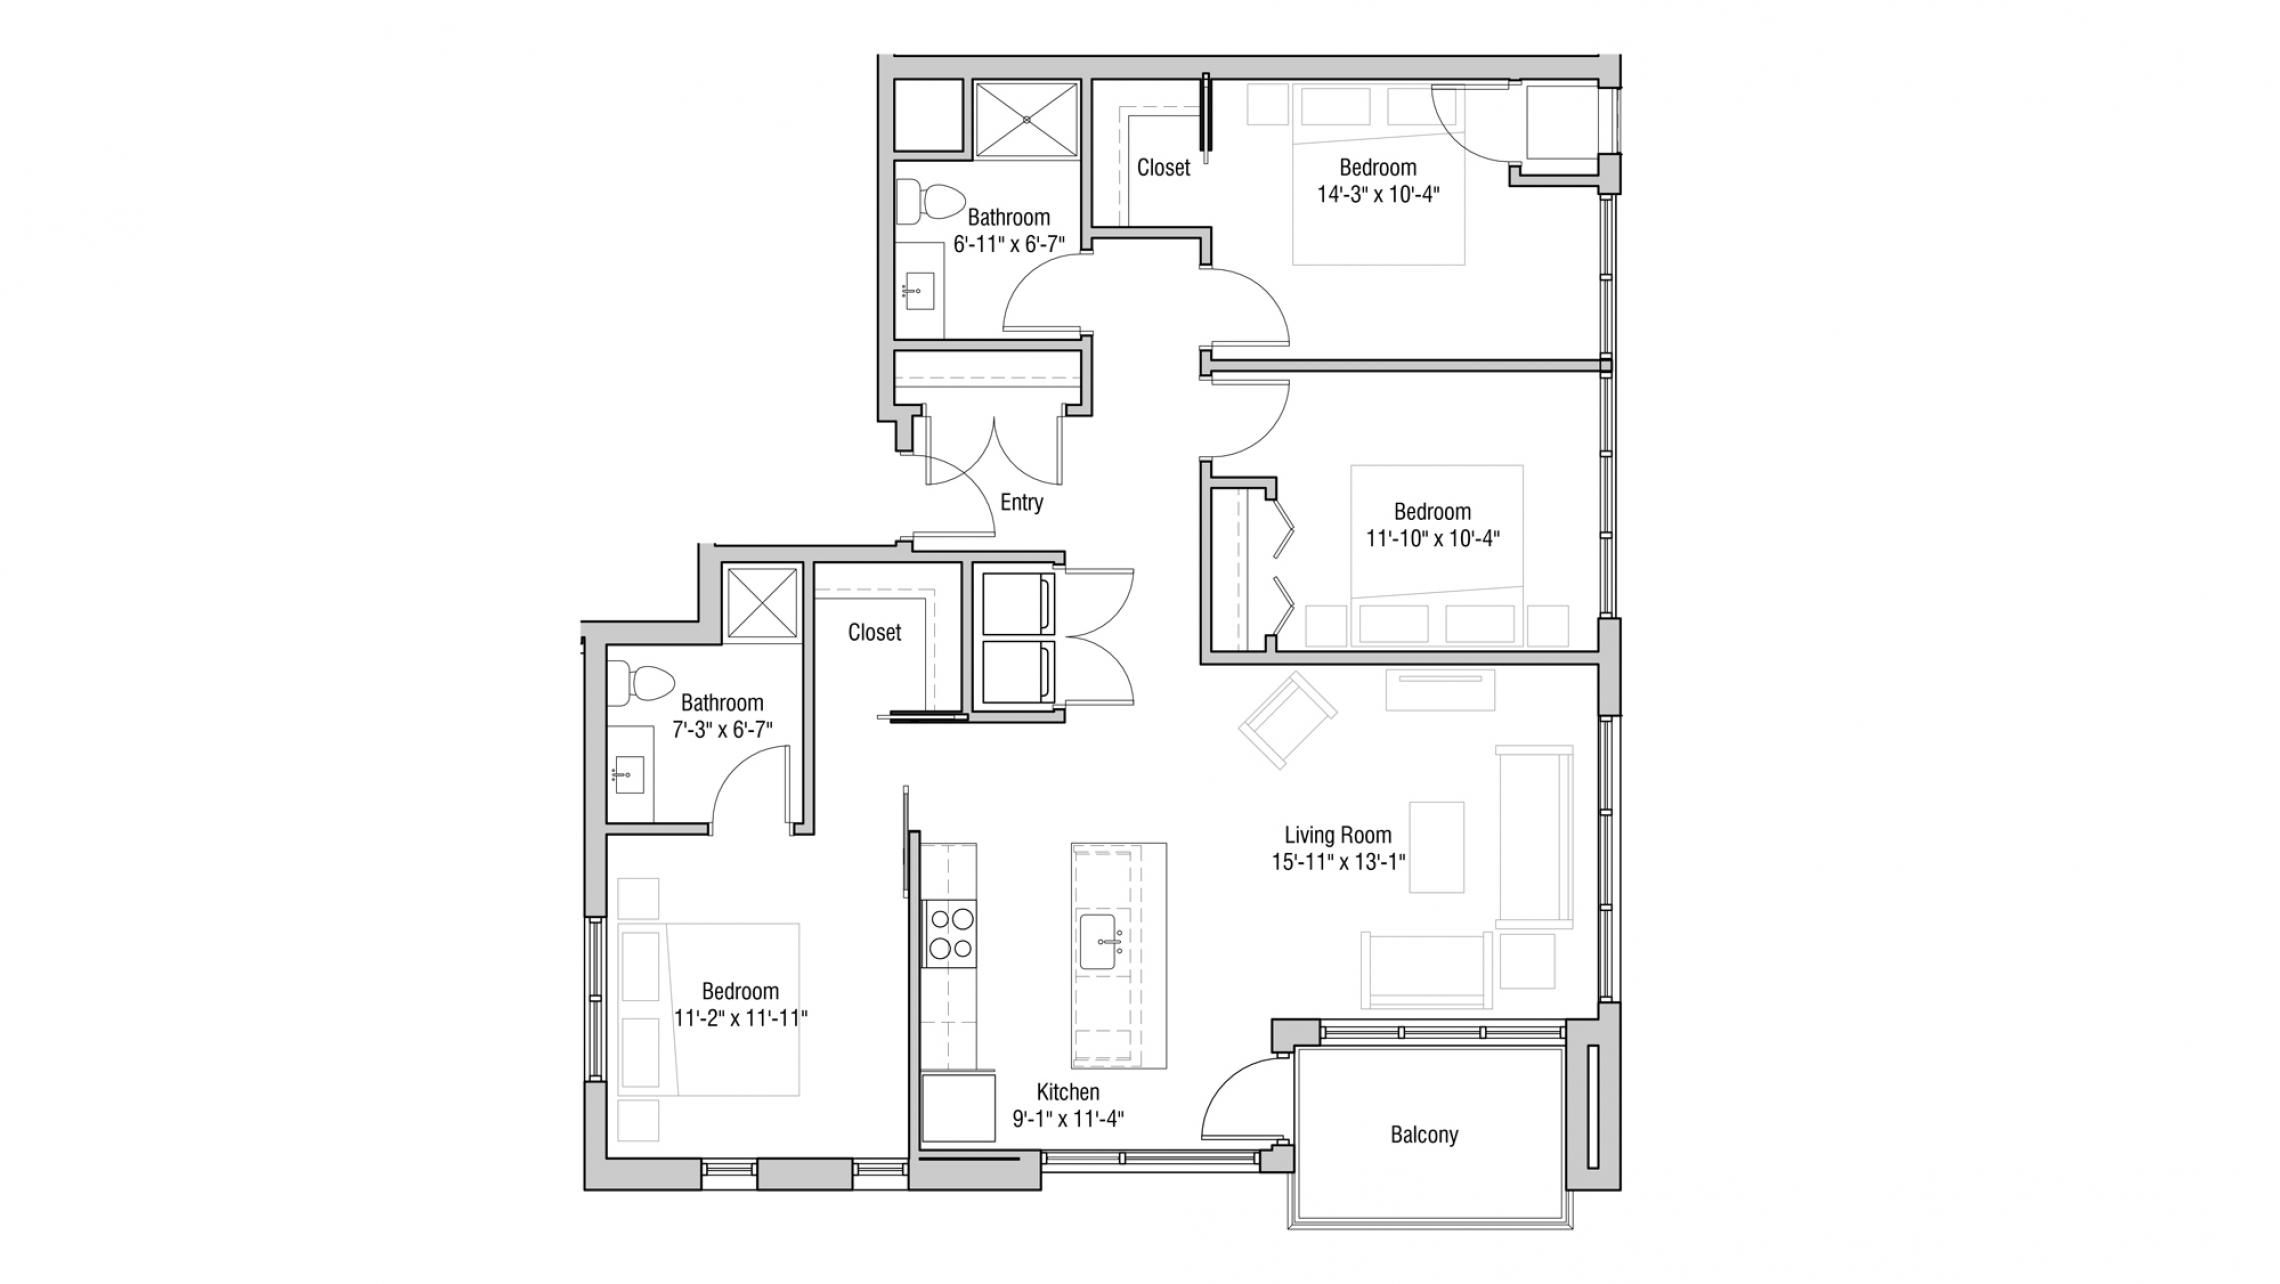 ULI Quarter Row 401 - Three Bedroom, Two Bathroom